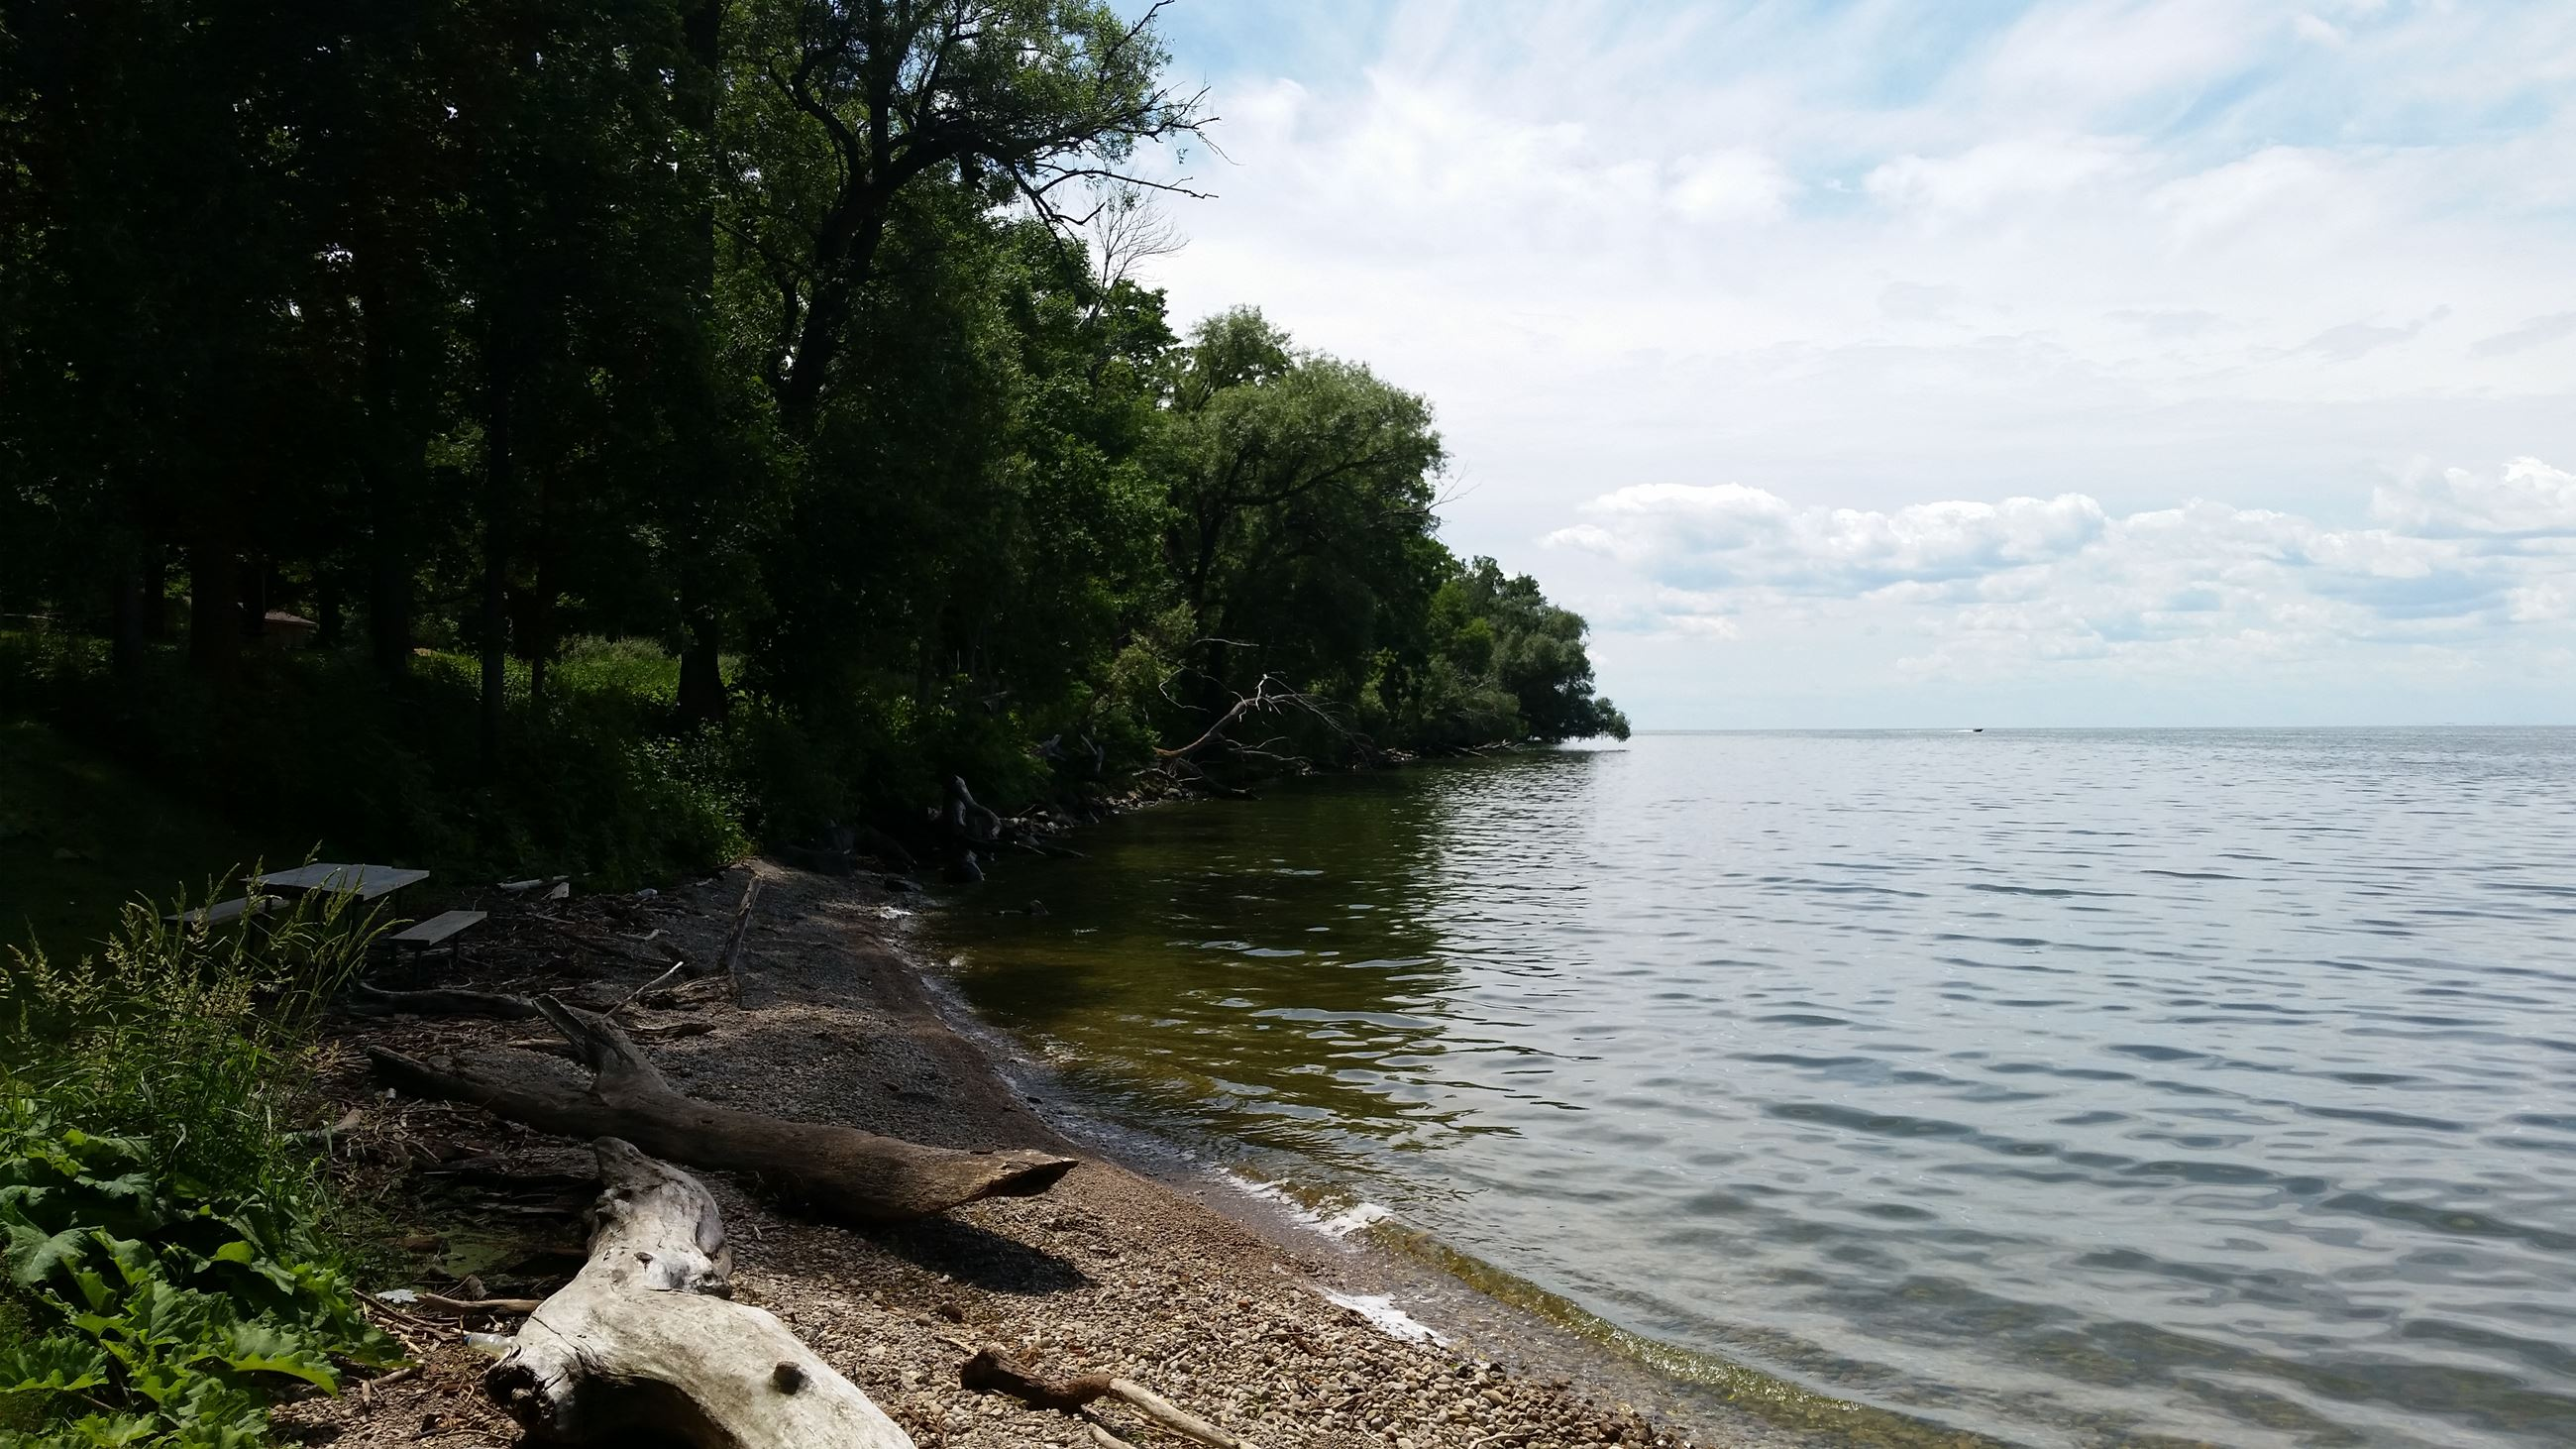 Lakeshore line on lake winnebago.